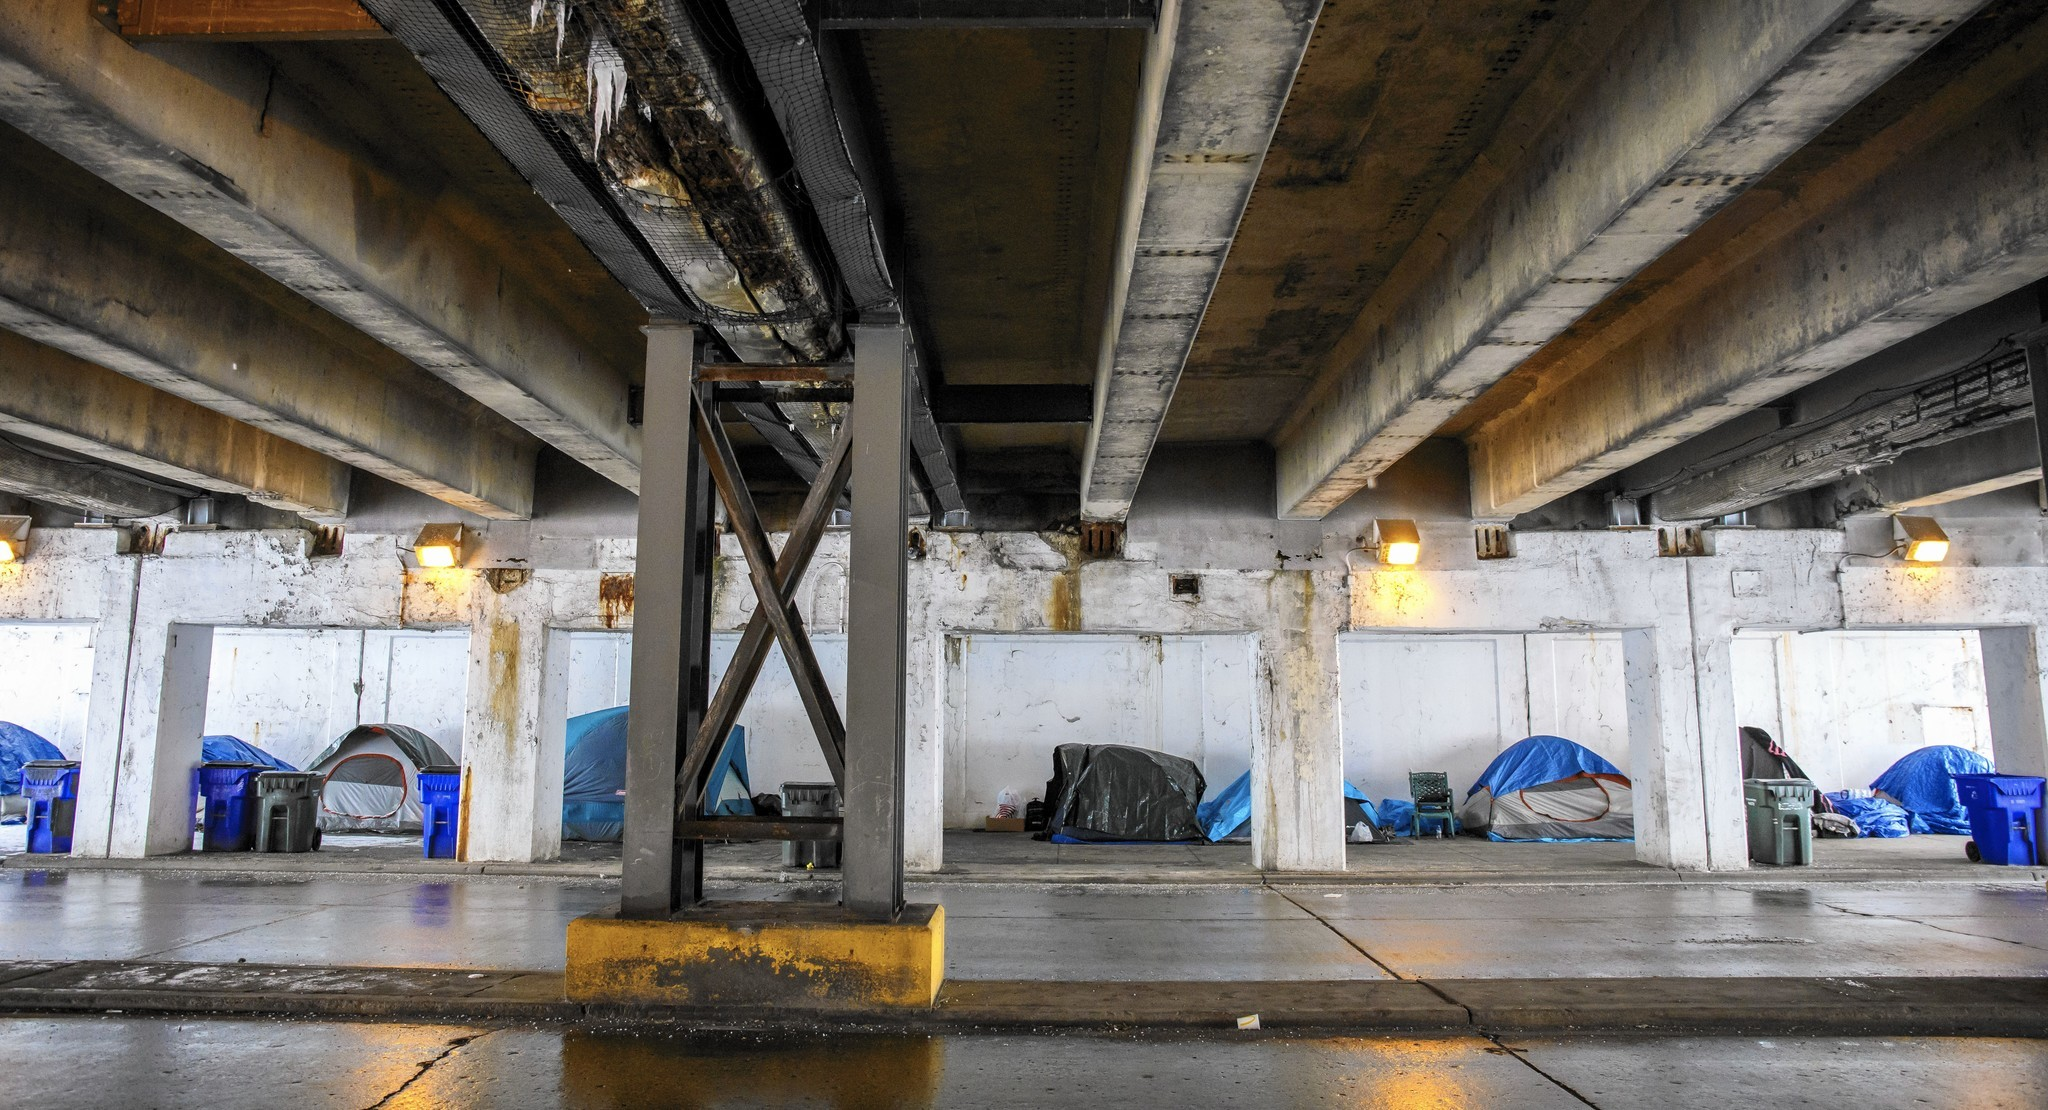 Chicagos homeless need housing not handouts  Chicago